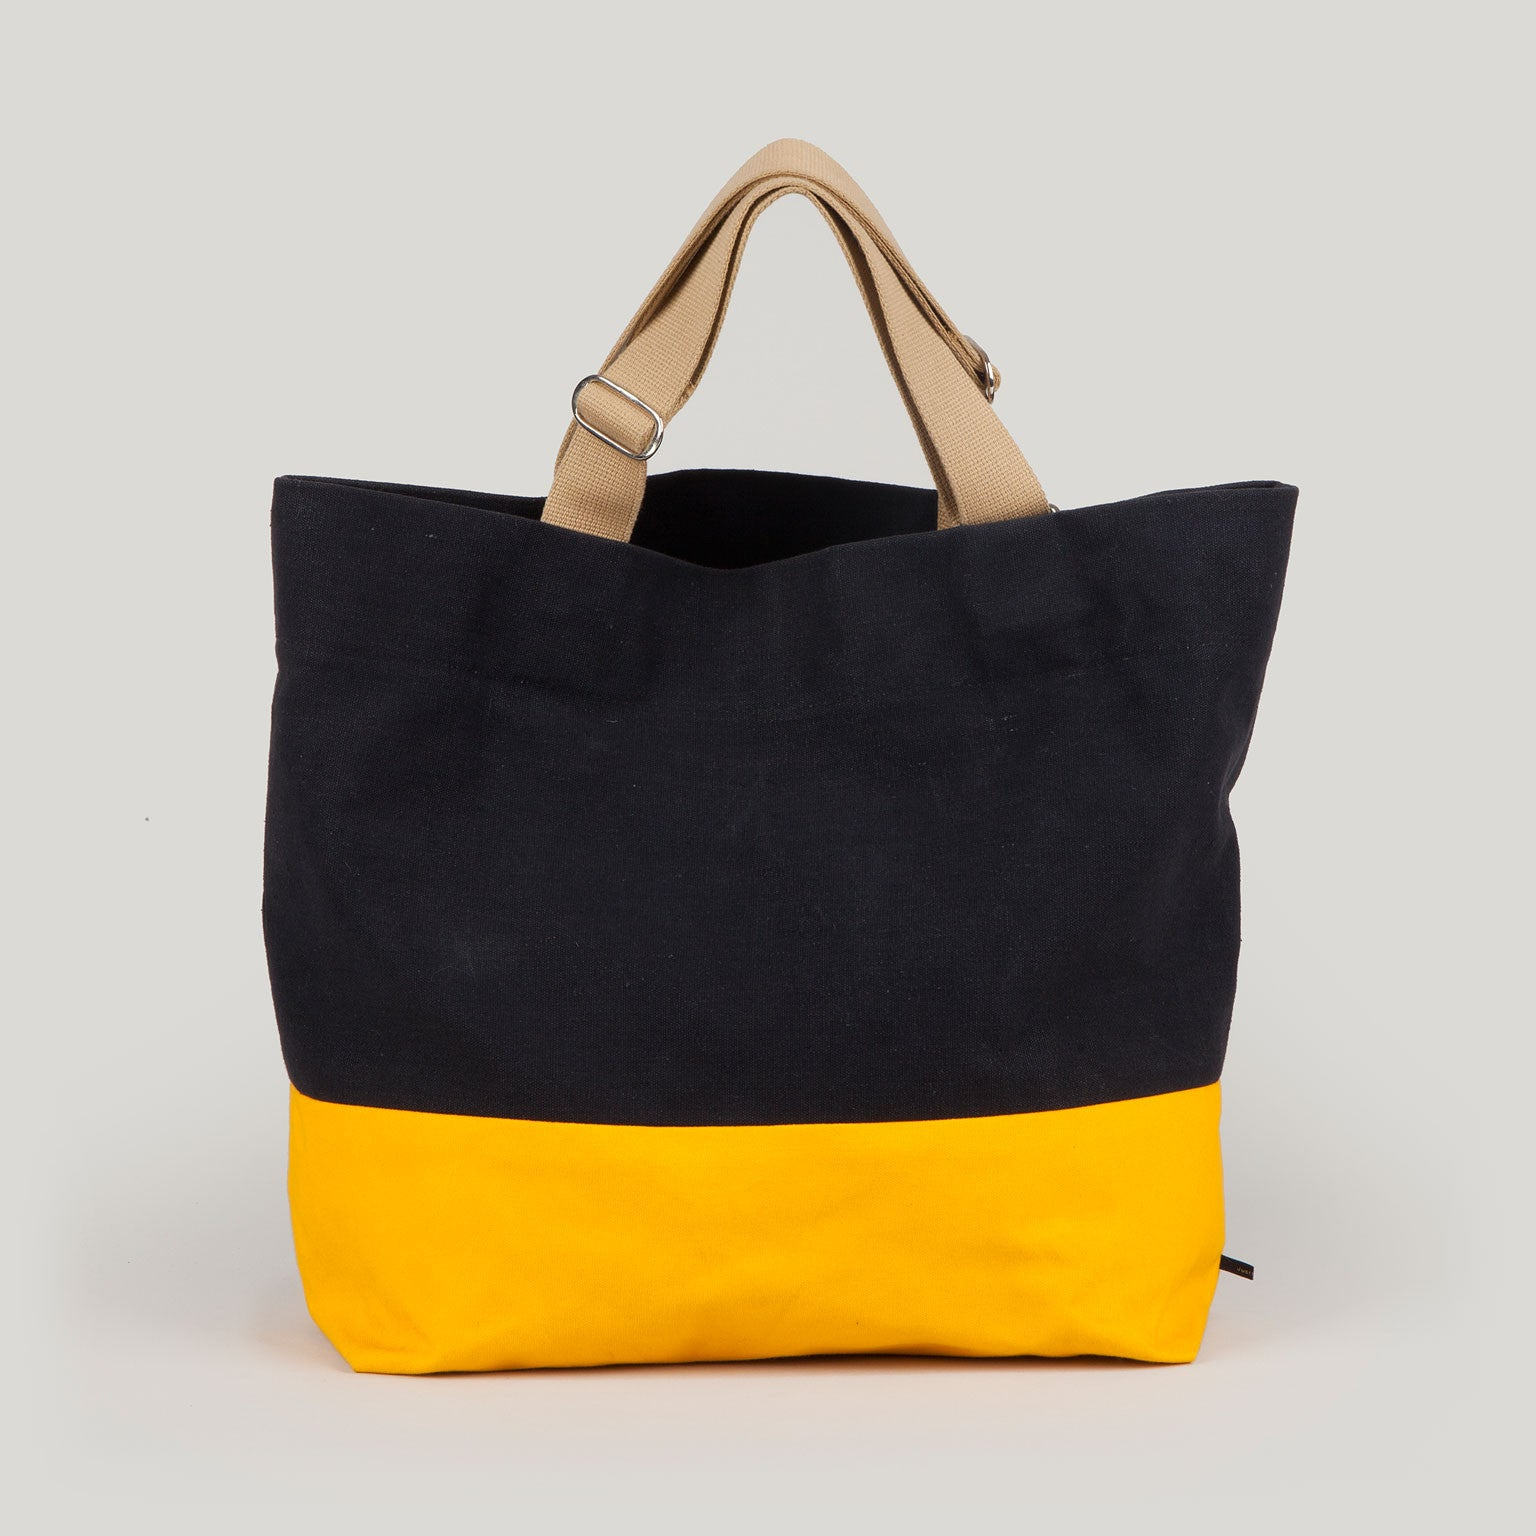 FRIDA Tote - black & yellow